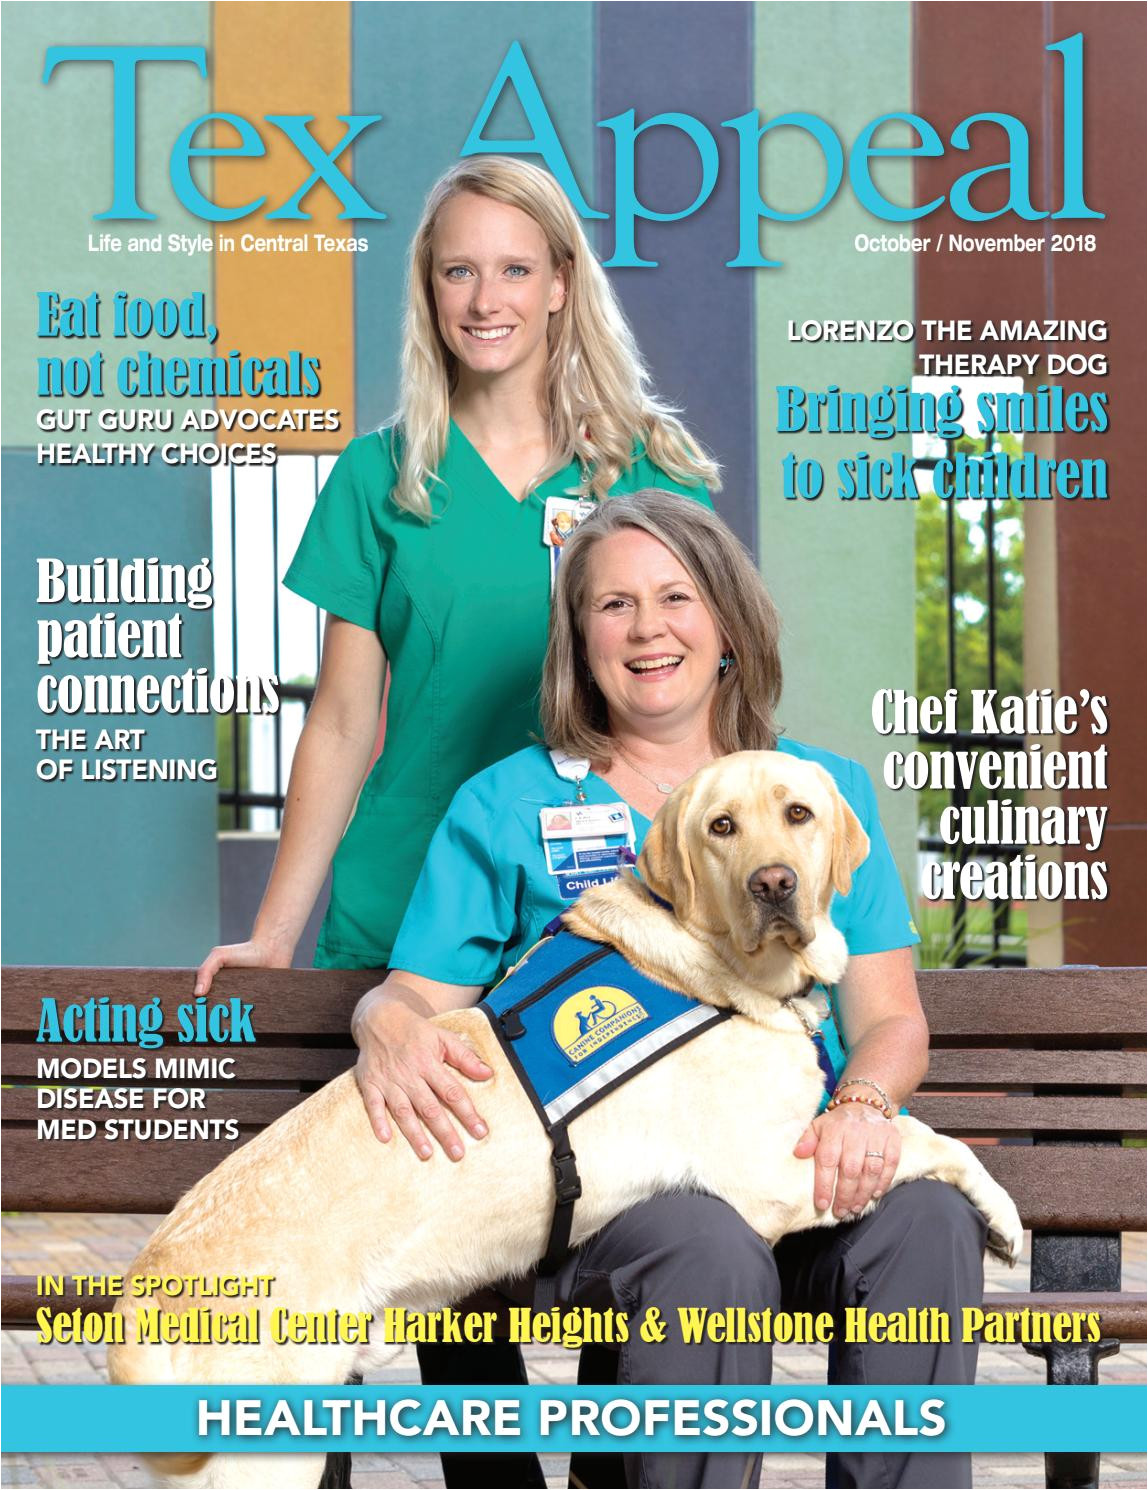 tex appeal magazine october november 2018 by temple daily telegram issuu